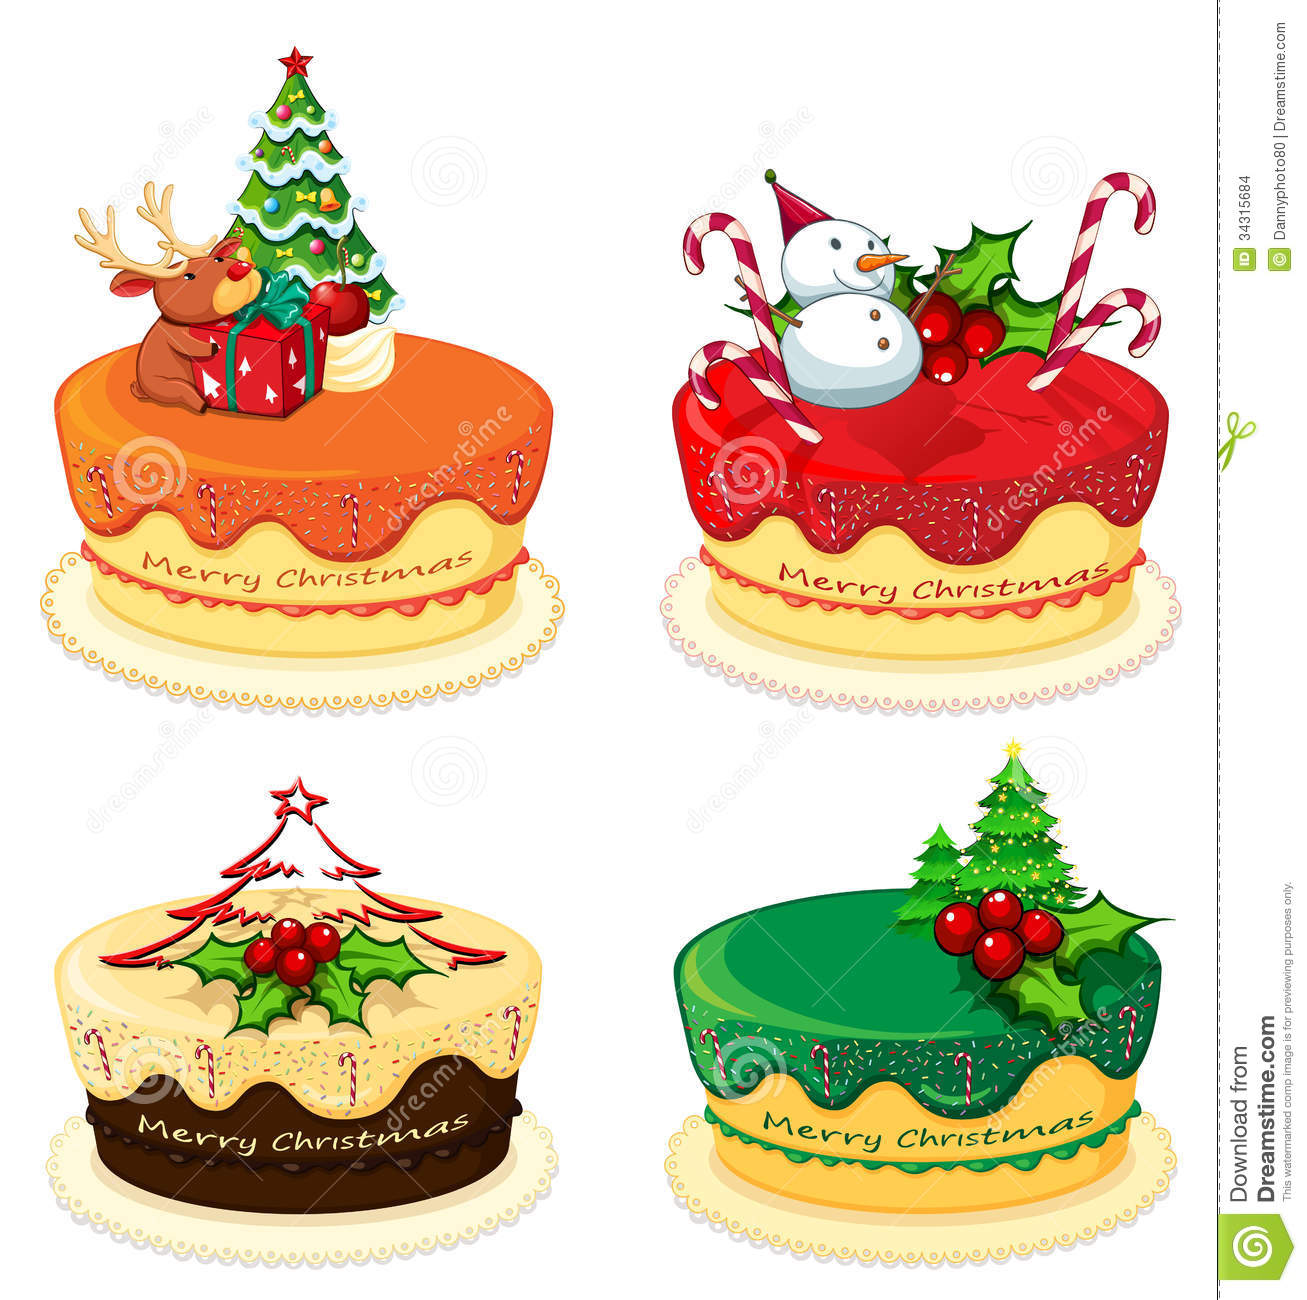 Four Cake Designs For Christmas Stock Images - Image: 34315684